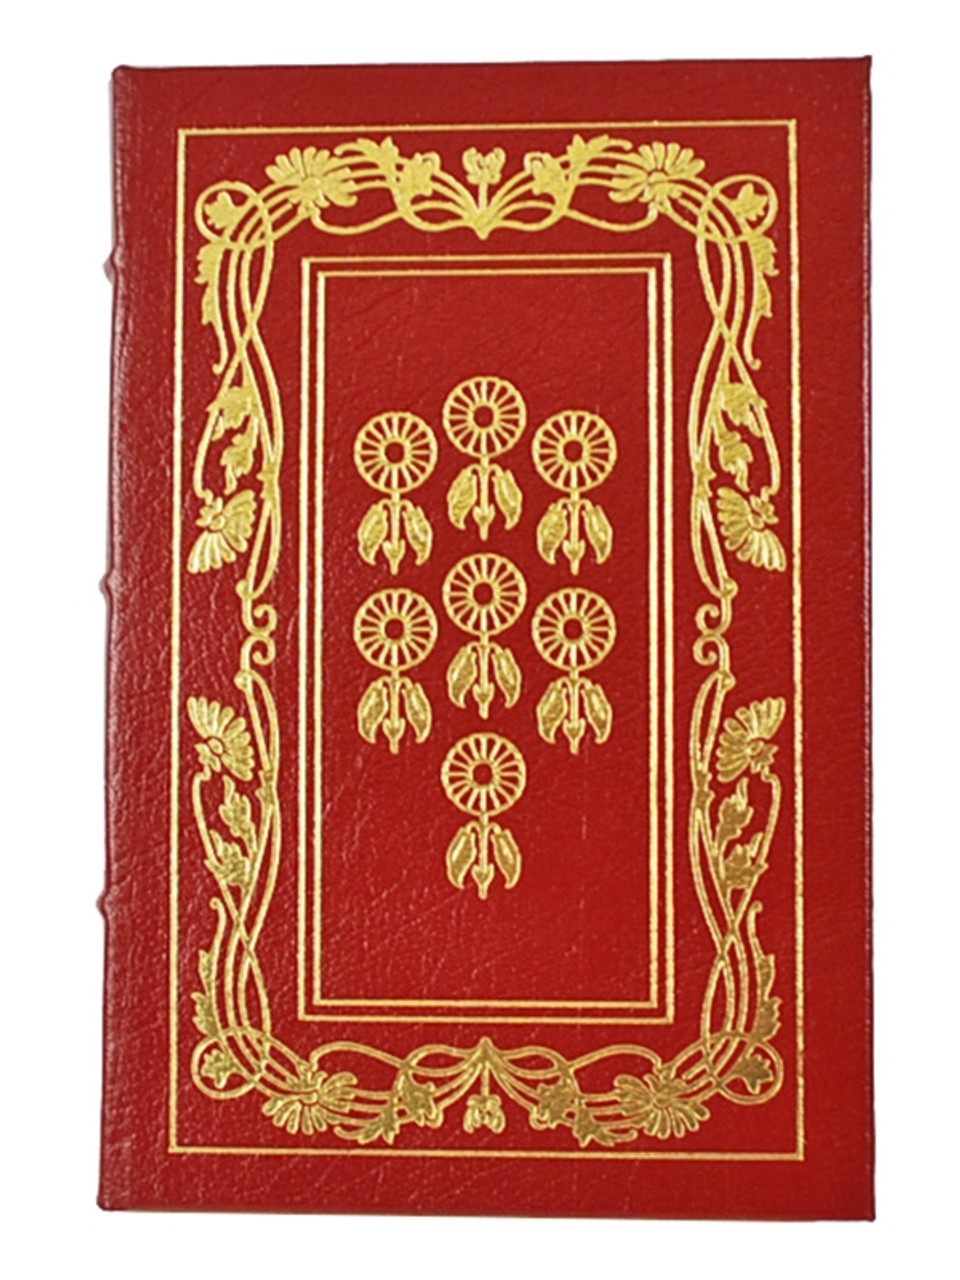 Ray Bradbury 'Dandelion Wine' Leather Bound Limited Edition - Very Fine